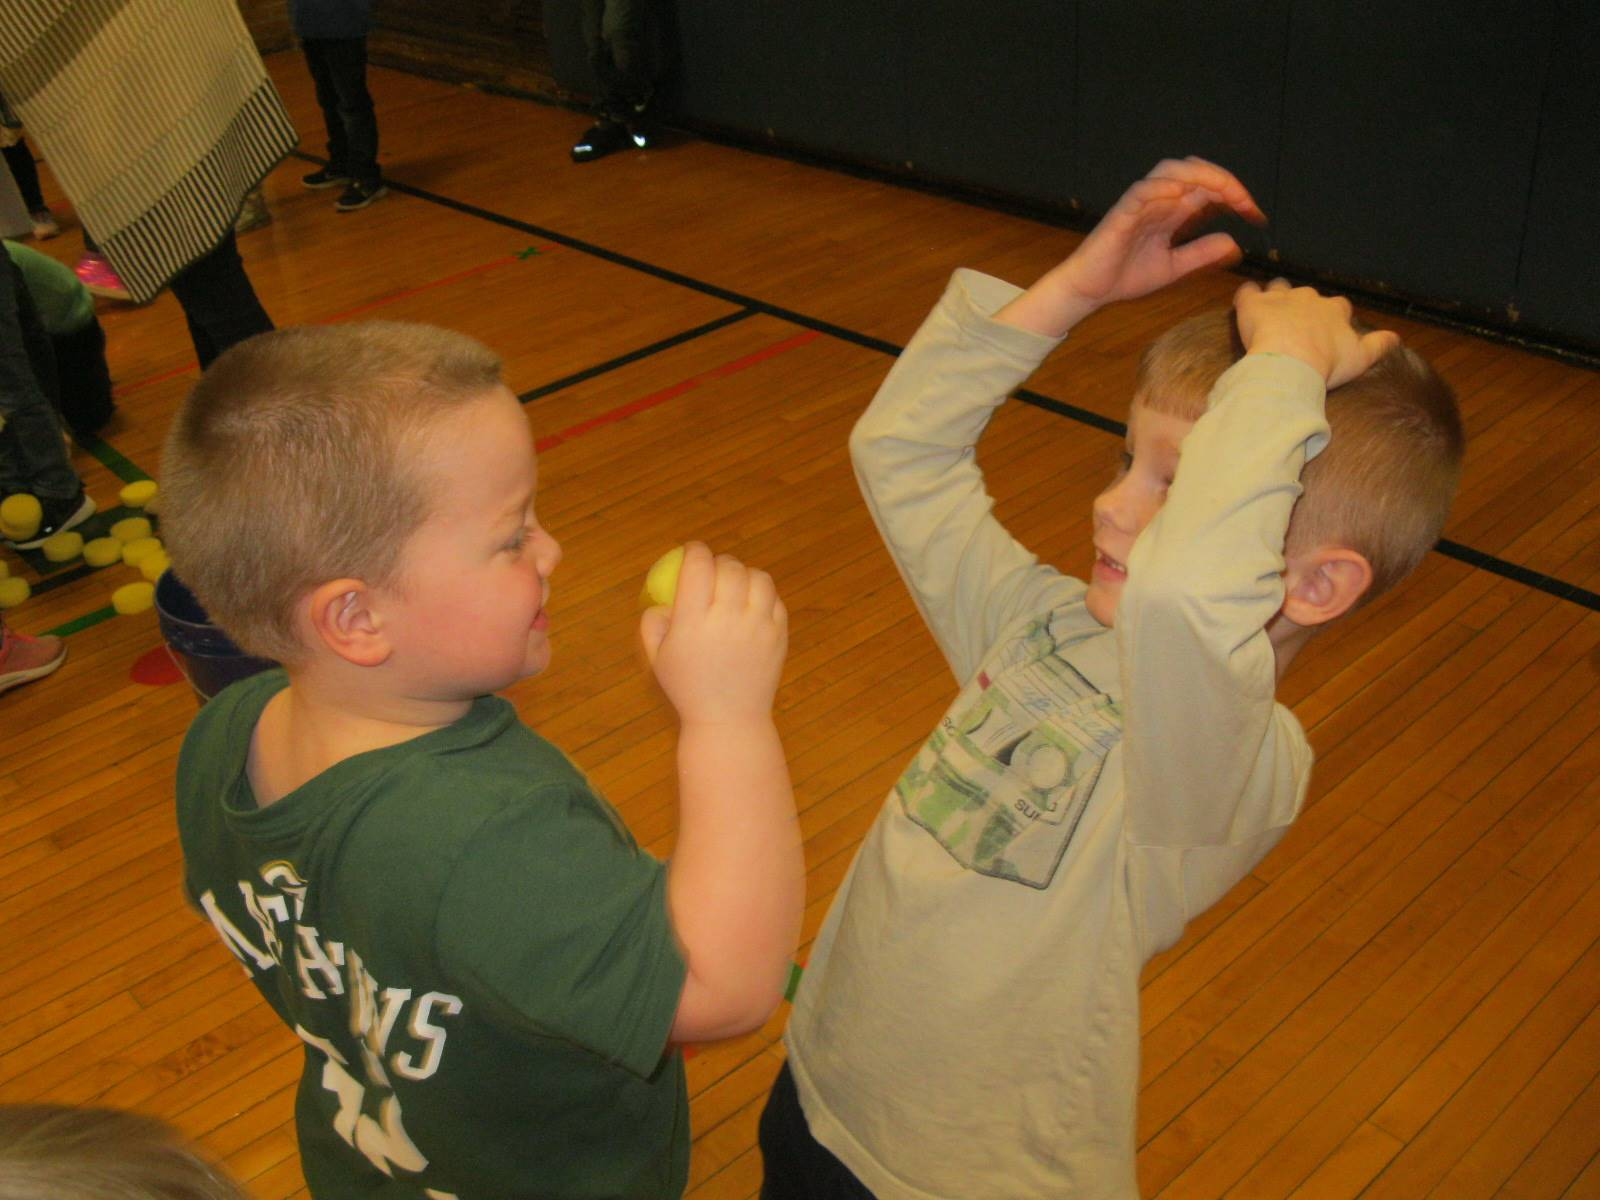 2 students try teamwork.